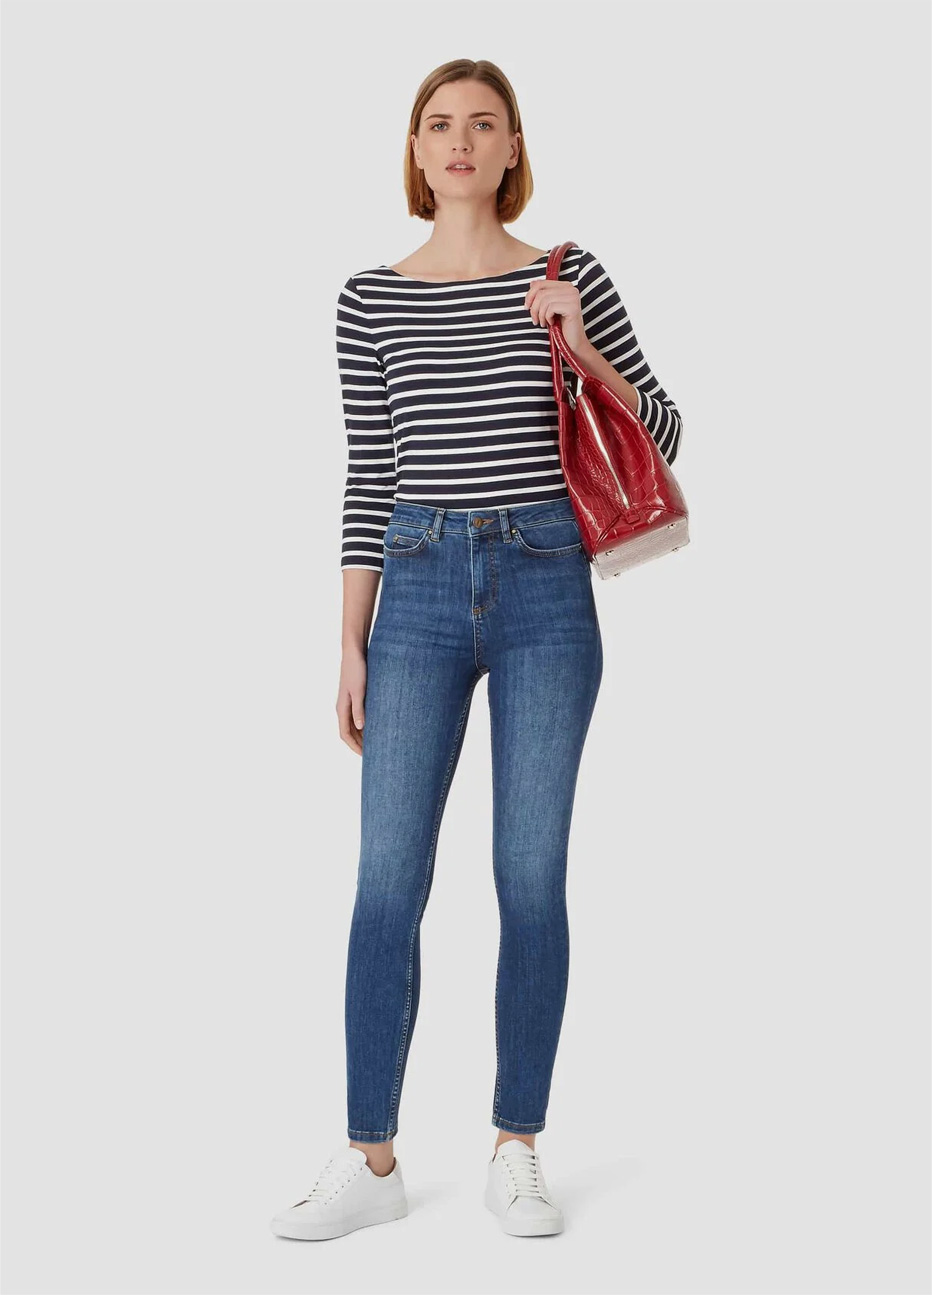 Striped top in black and white worn with blue jeans, white trainers and a red leather bag by Hobbs.